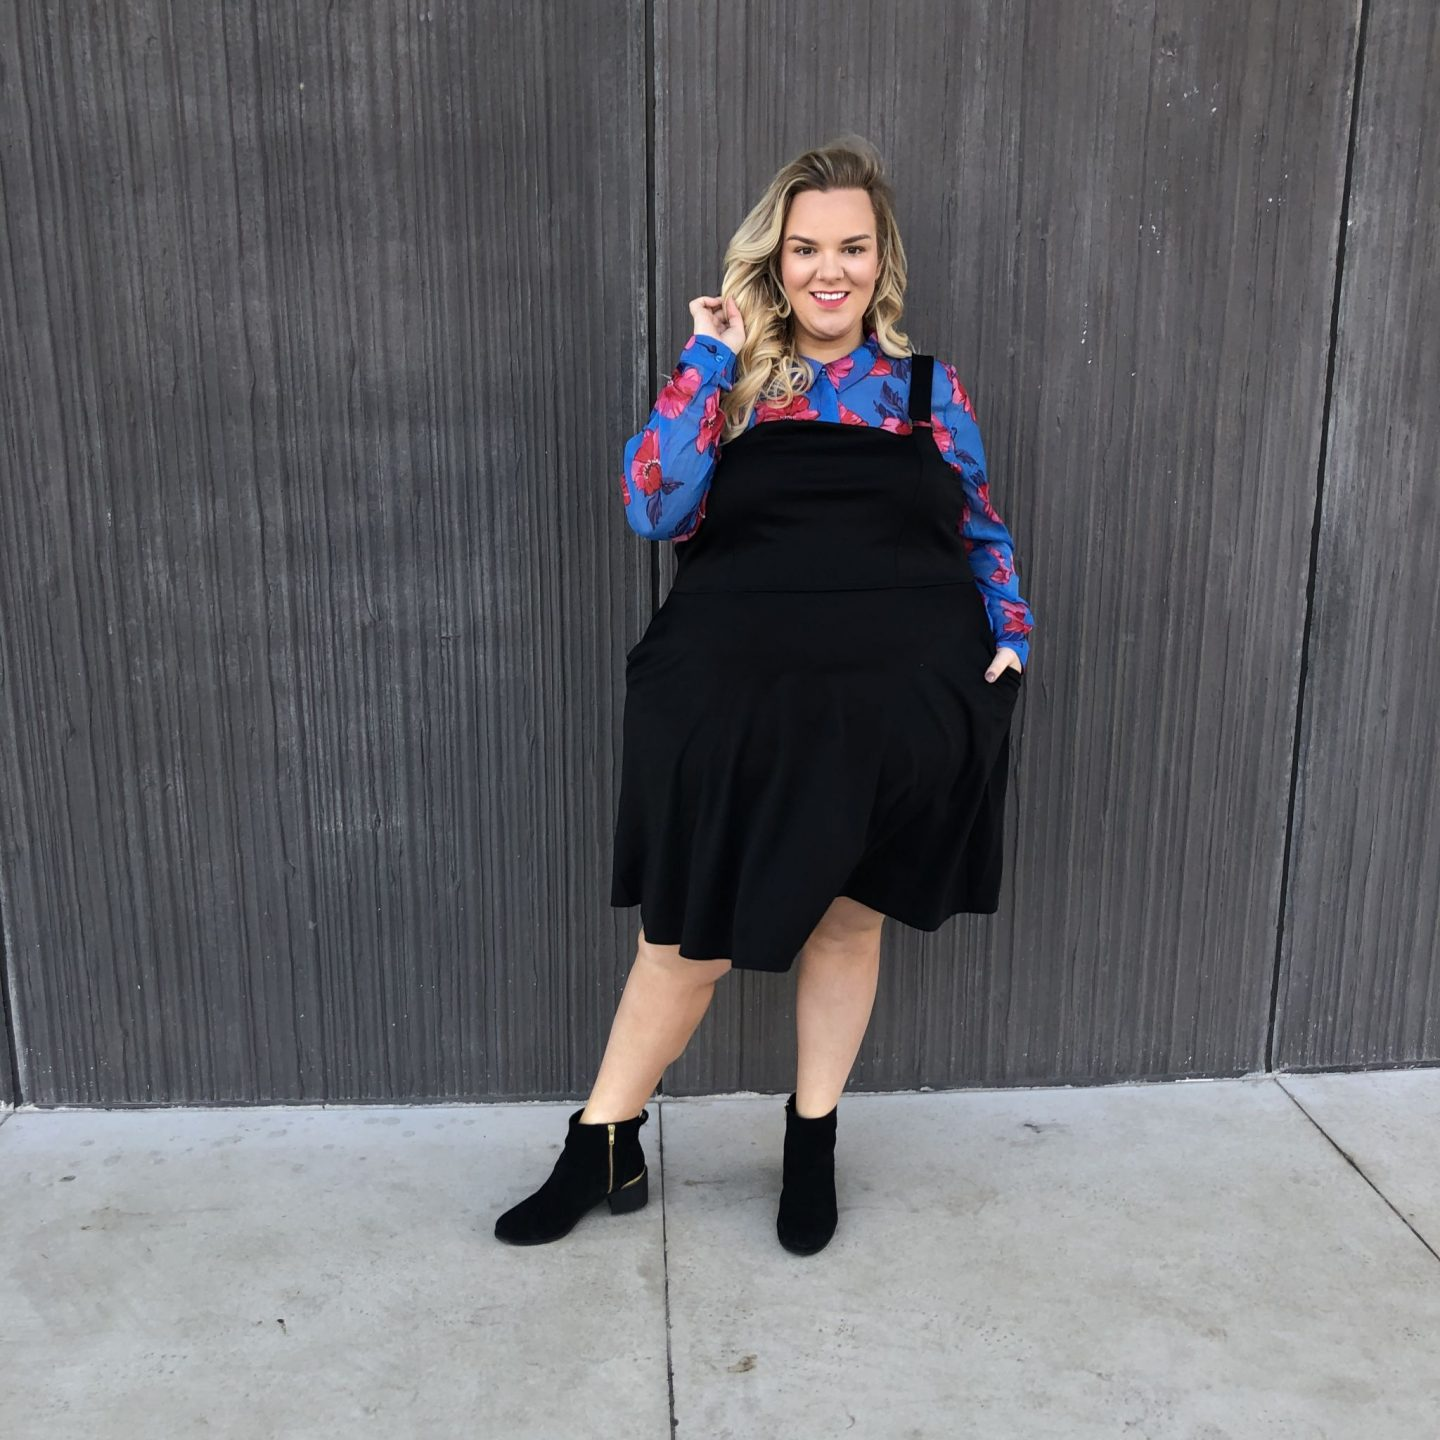 WhatLauraLoves Pinafore Dress and Floral Shirt